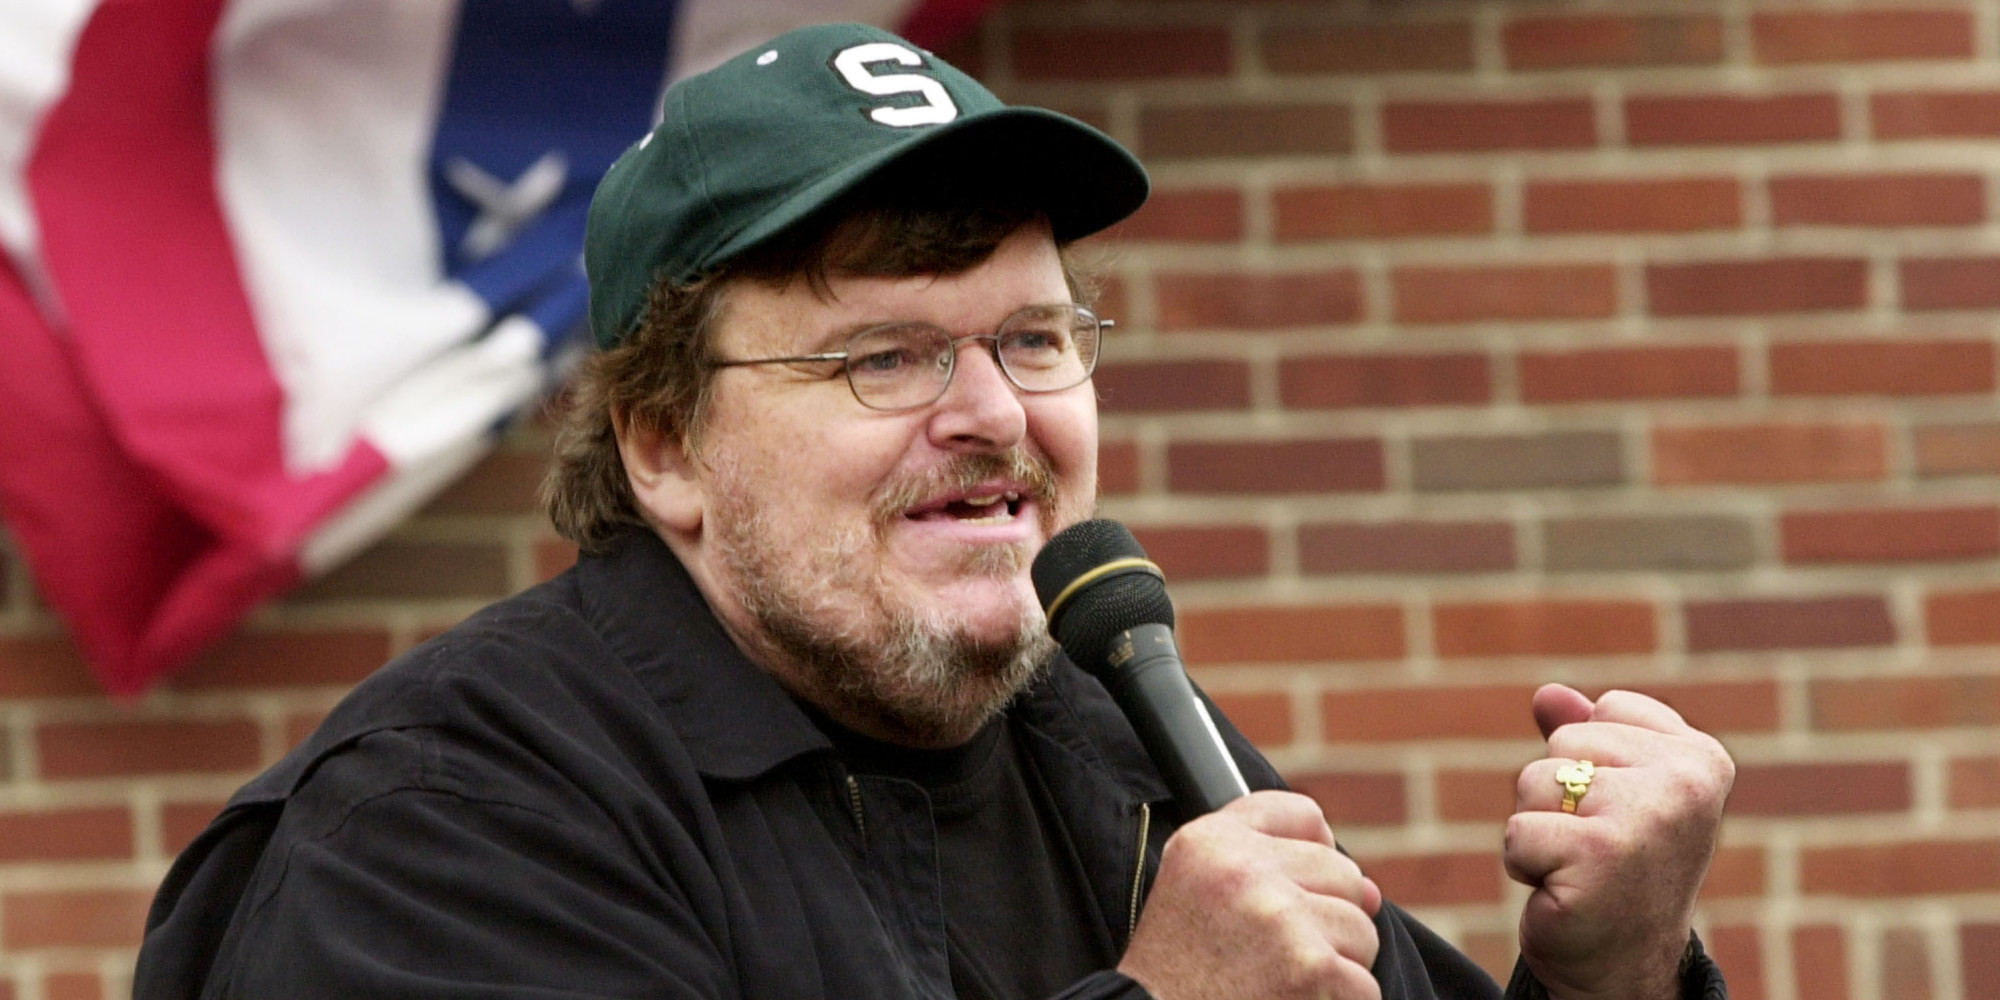 michael moore milton friedmanmichael moore in trumpland, michael moore trump, michael moore in trumpland смотреть онлайн, michael moore movies, michael moore films, michael moore wiki, michael moore in trumpland смотреть, michael moore imdb, michael moore 9/11, michael moore predictions, michael moore milton friedman, michael moore height, michael moore documentaries, michael moore filmography, michael moore phil knight, michael moore instagram, michael moore education, michael moore ukraine, michael moore show, michael moore ceramics